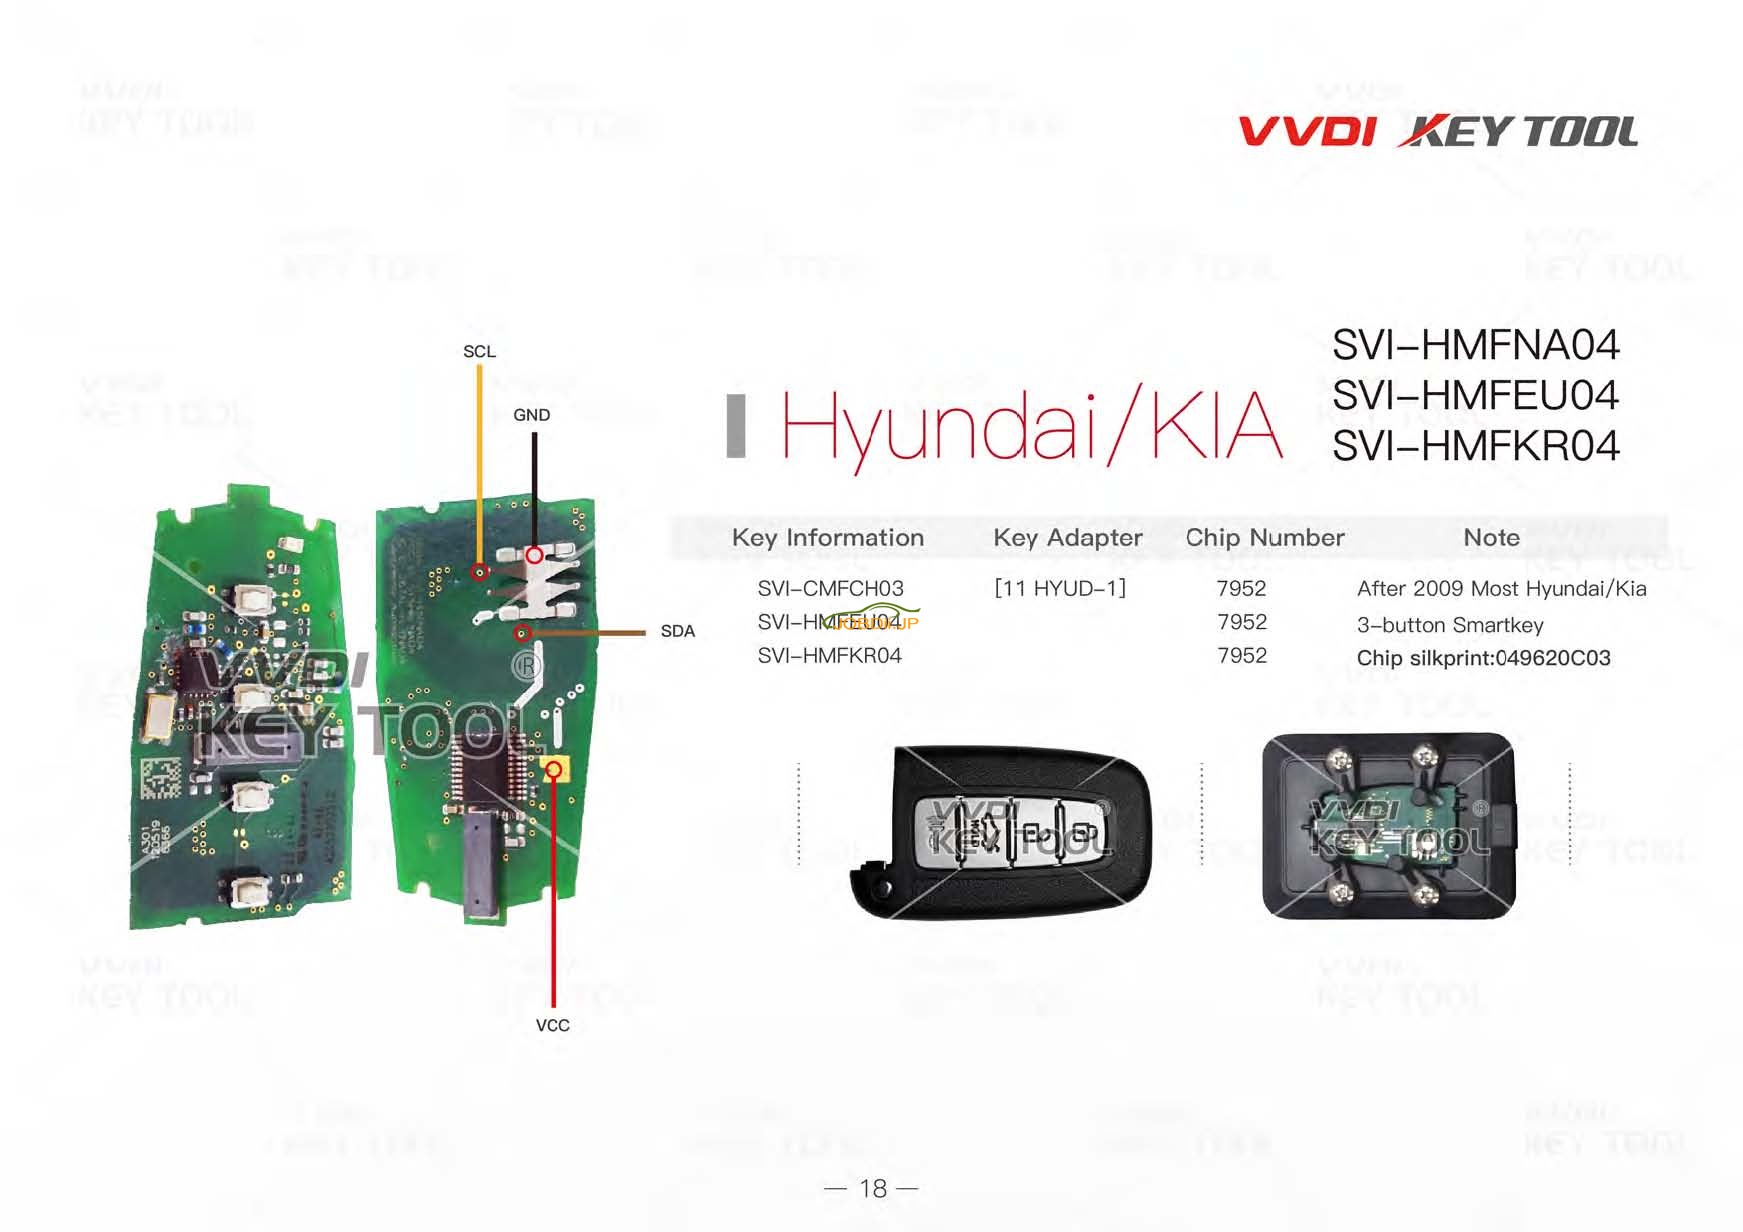 vvdi-key-tool-renew-diagram-18